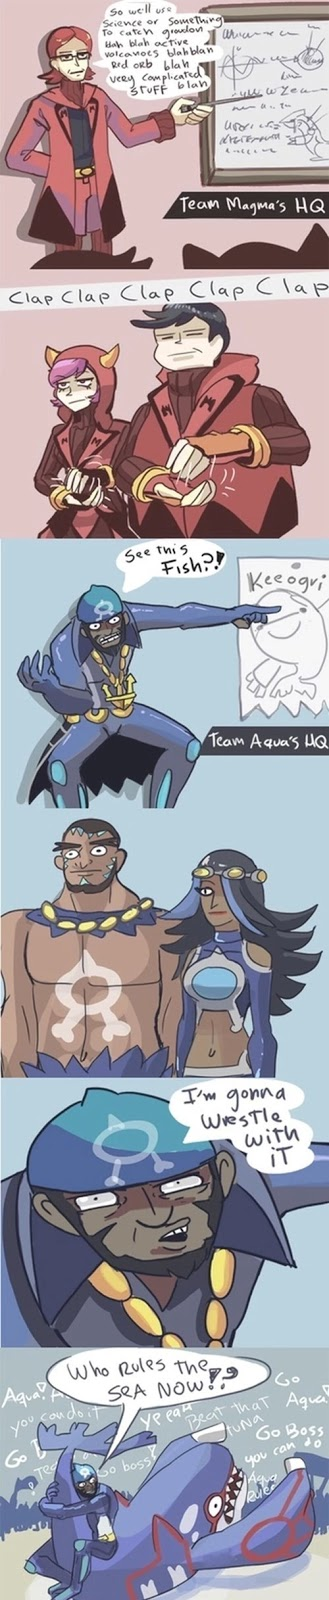 team aqua is the best funny comic